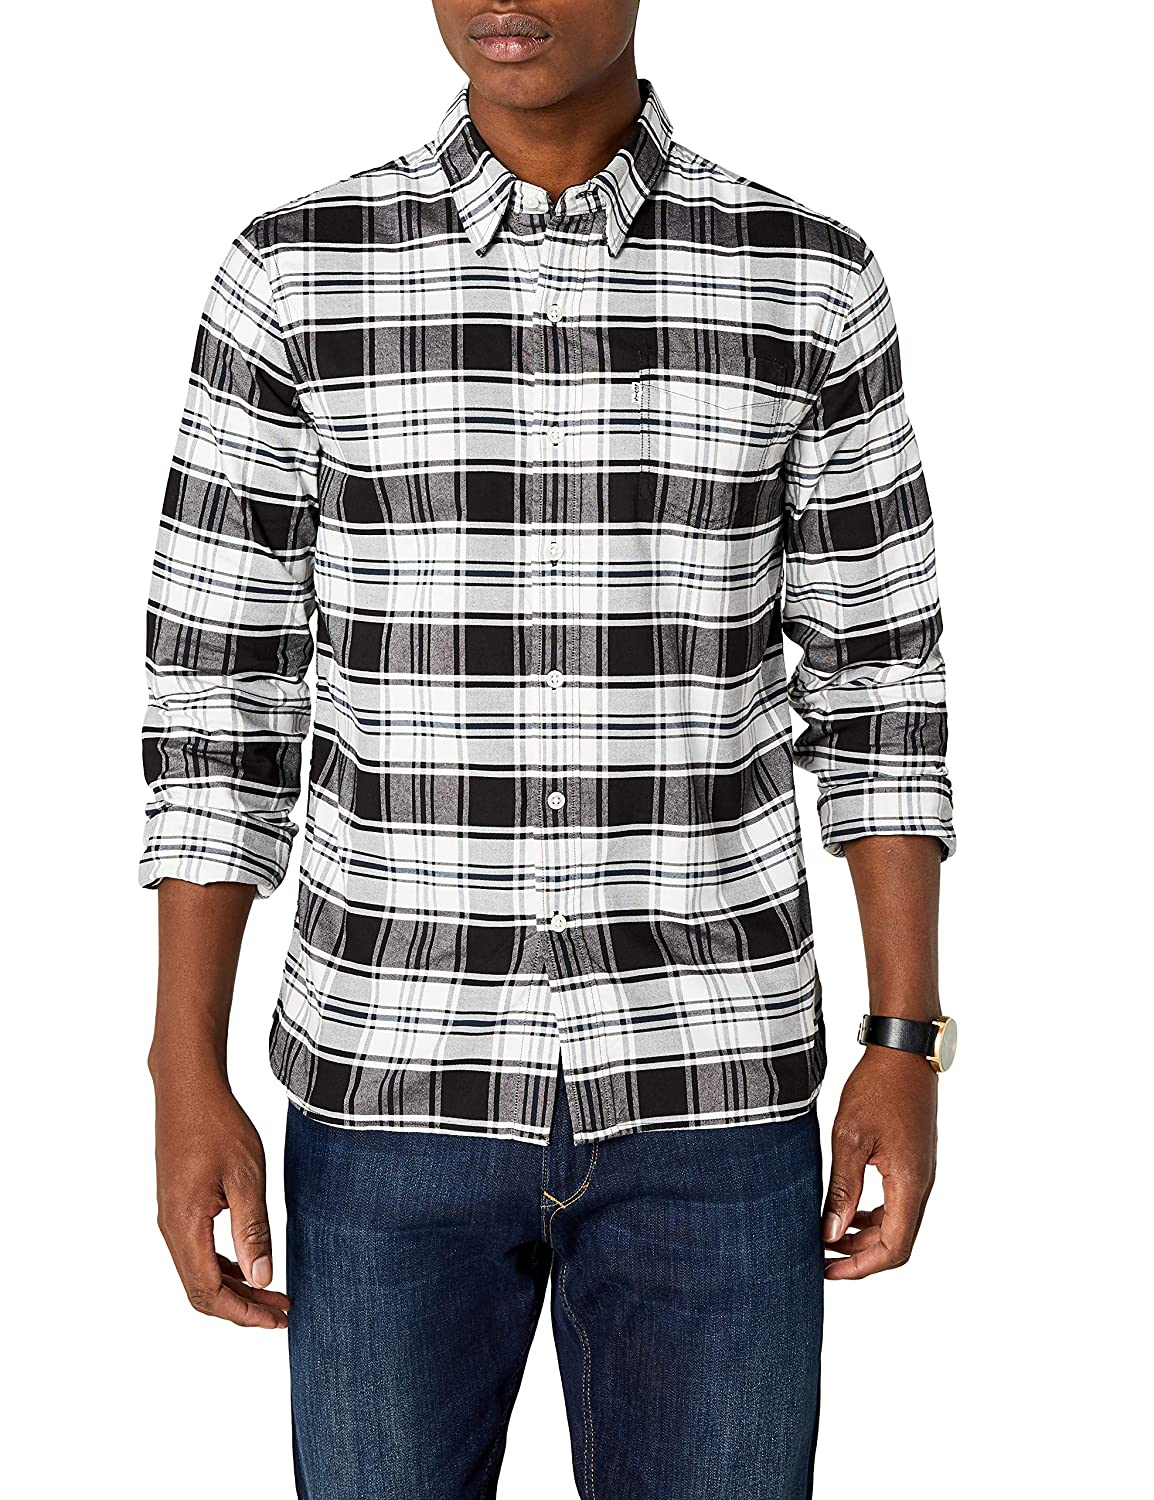 TALLA S. Levi's Sunset 1 Pocket Shirt Camisa Casual para Hombre